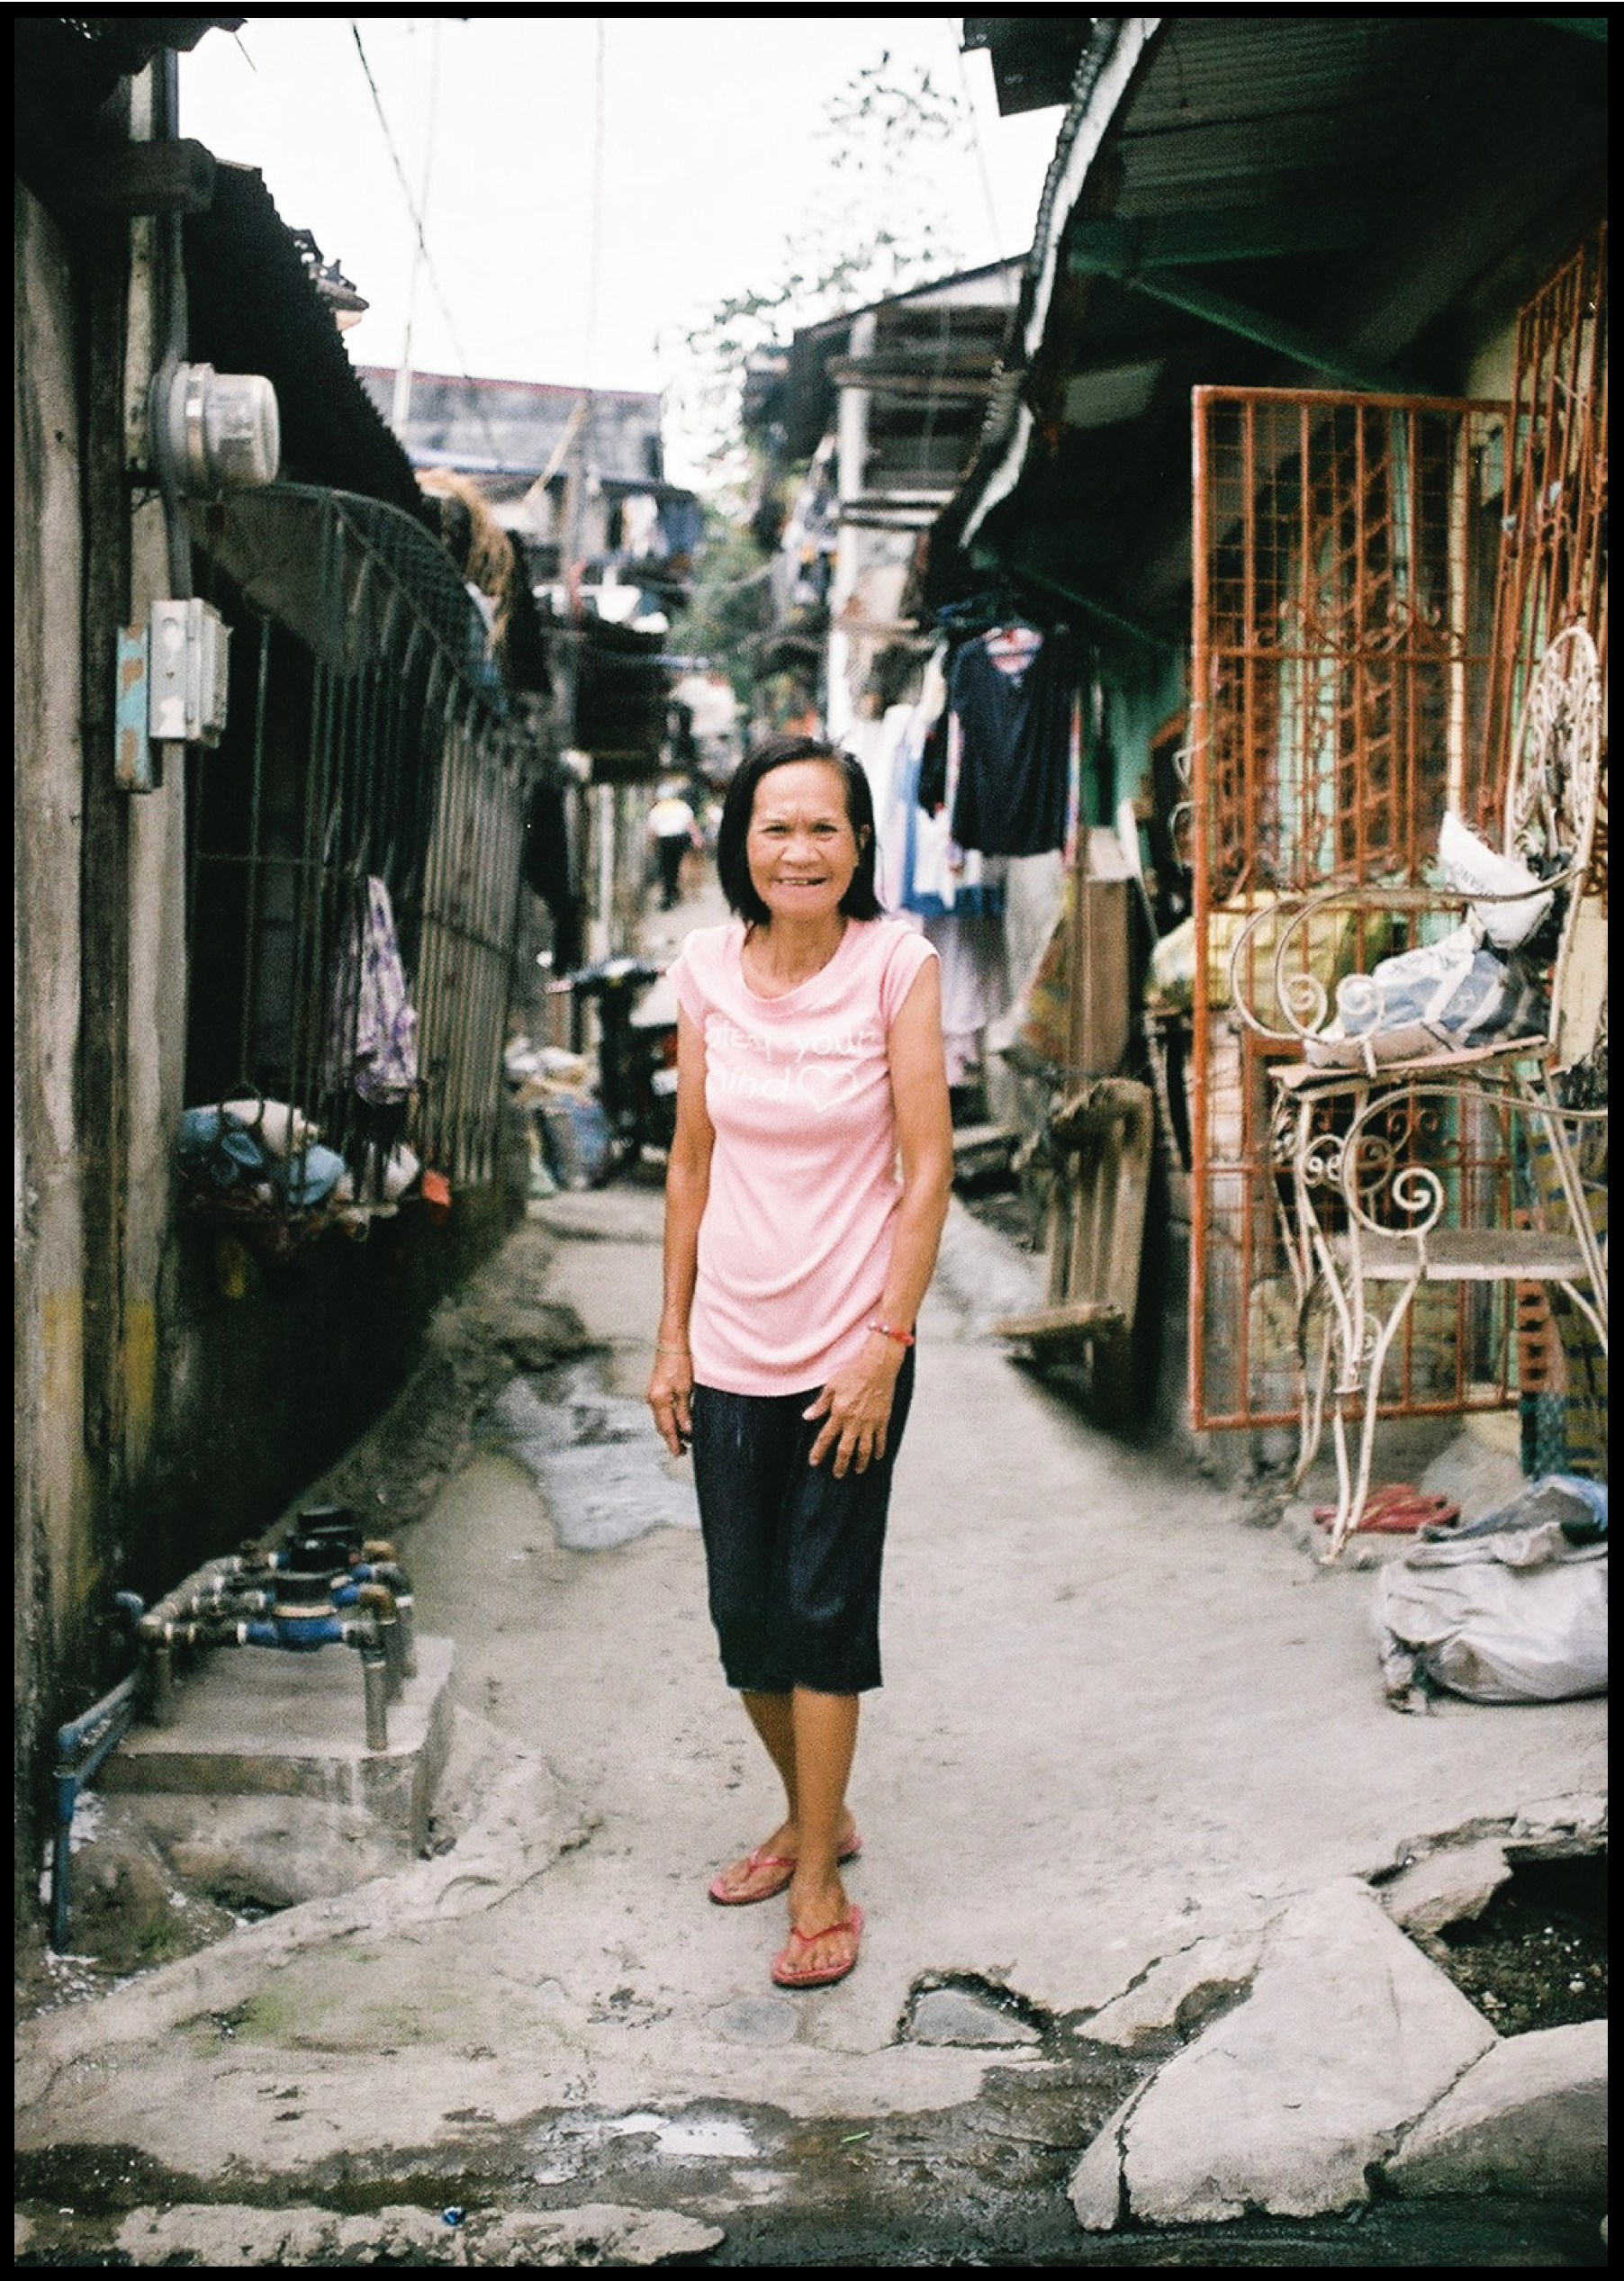 CoxCo_daily_life_Philippines 2019-08-04 14.12.21.png